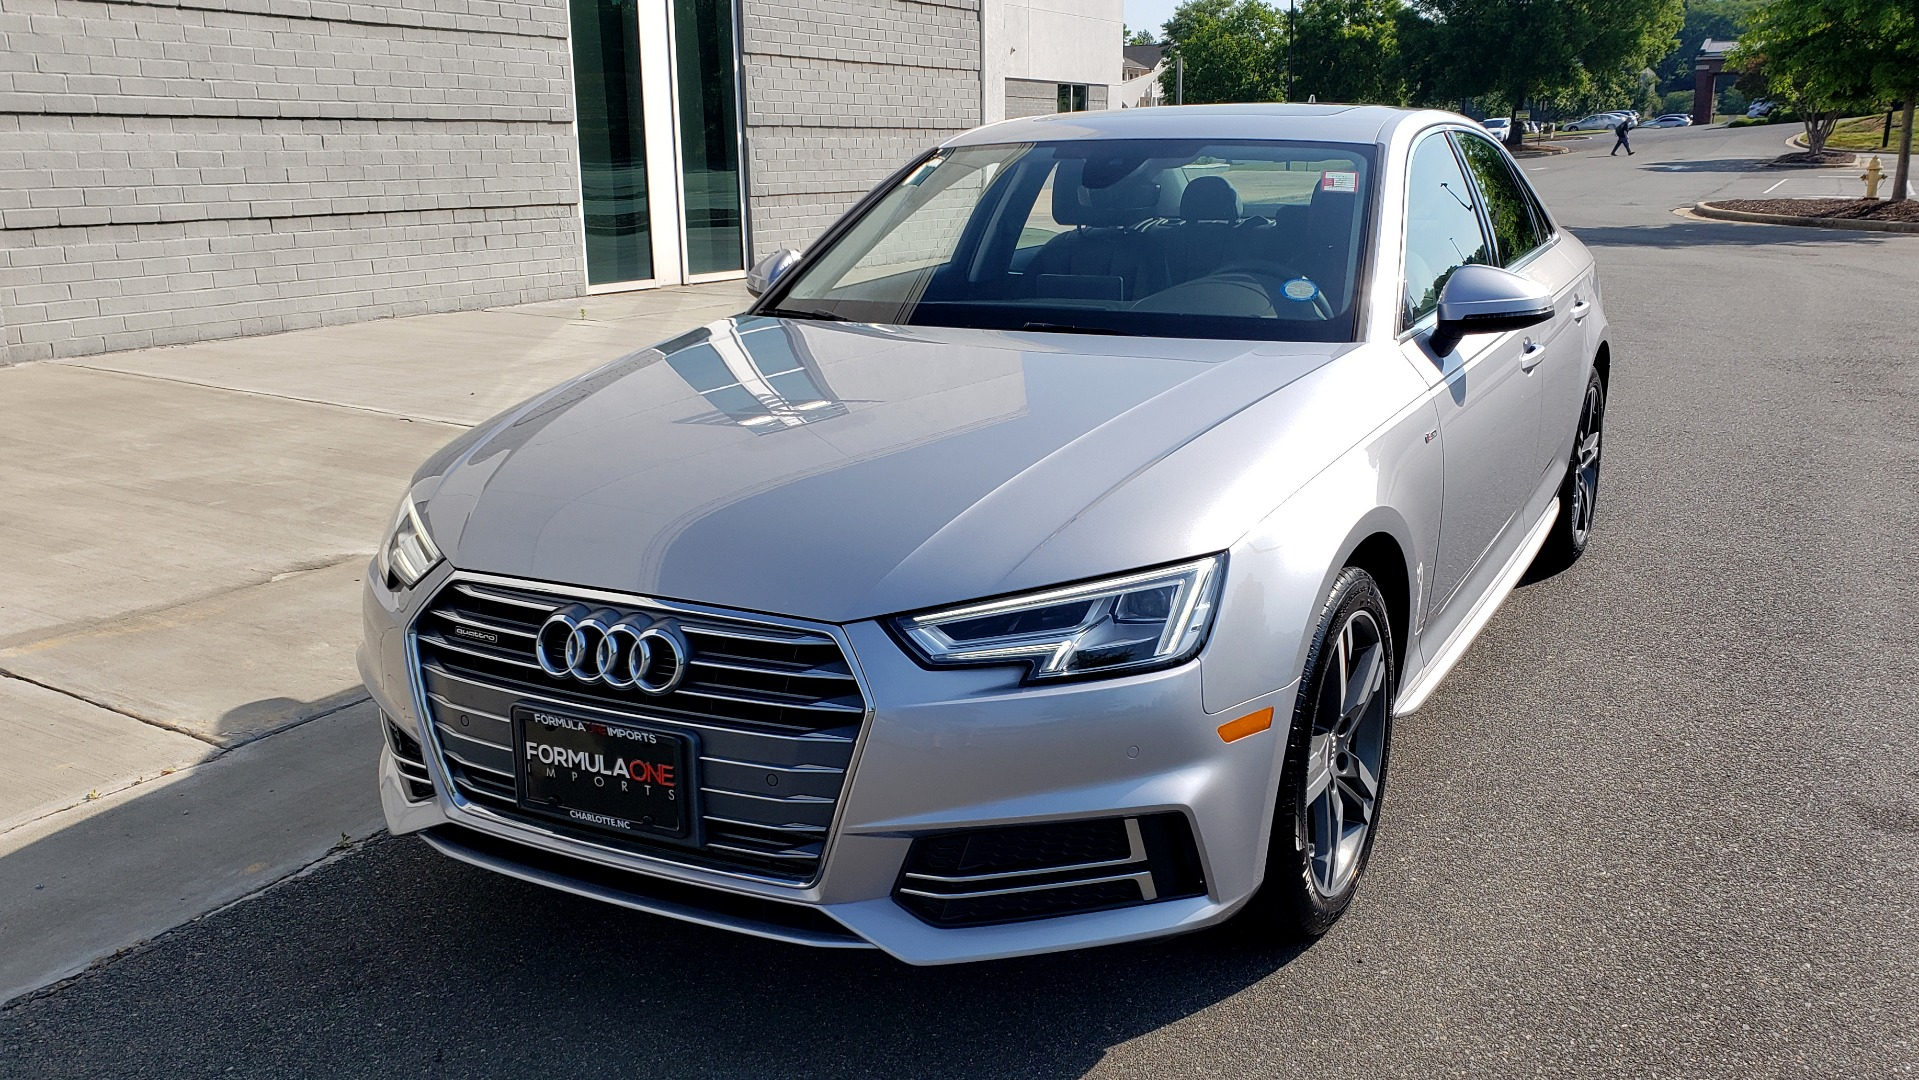 Used 2018 Audi A4 PREMIUM PLUS 2.0T / NAV / SUNROOF / B&O SND / CLD WTHR / REARVIEW for sale $29,395 at Formula Imports in Charlotte NC 28227 1